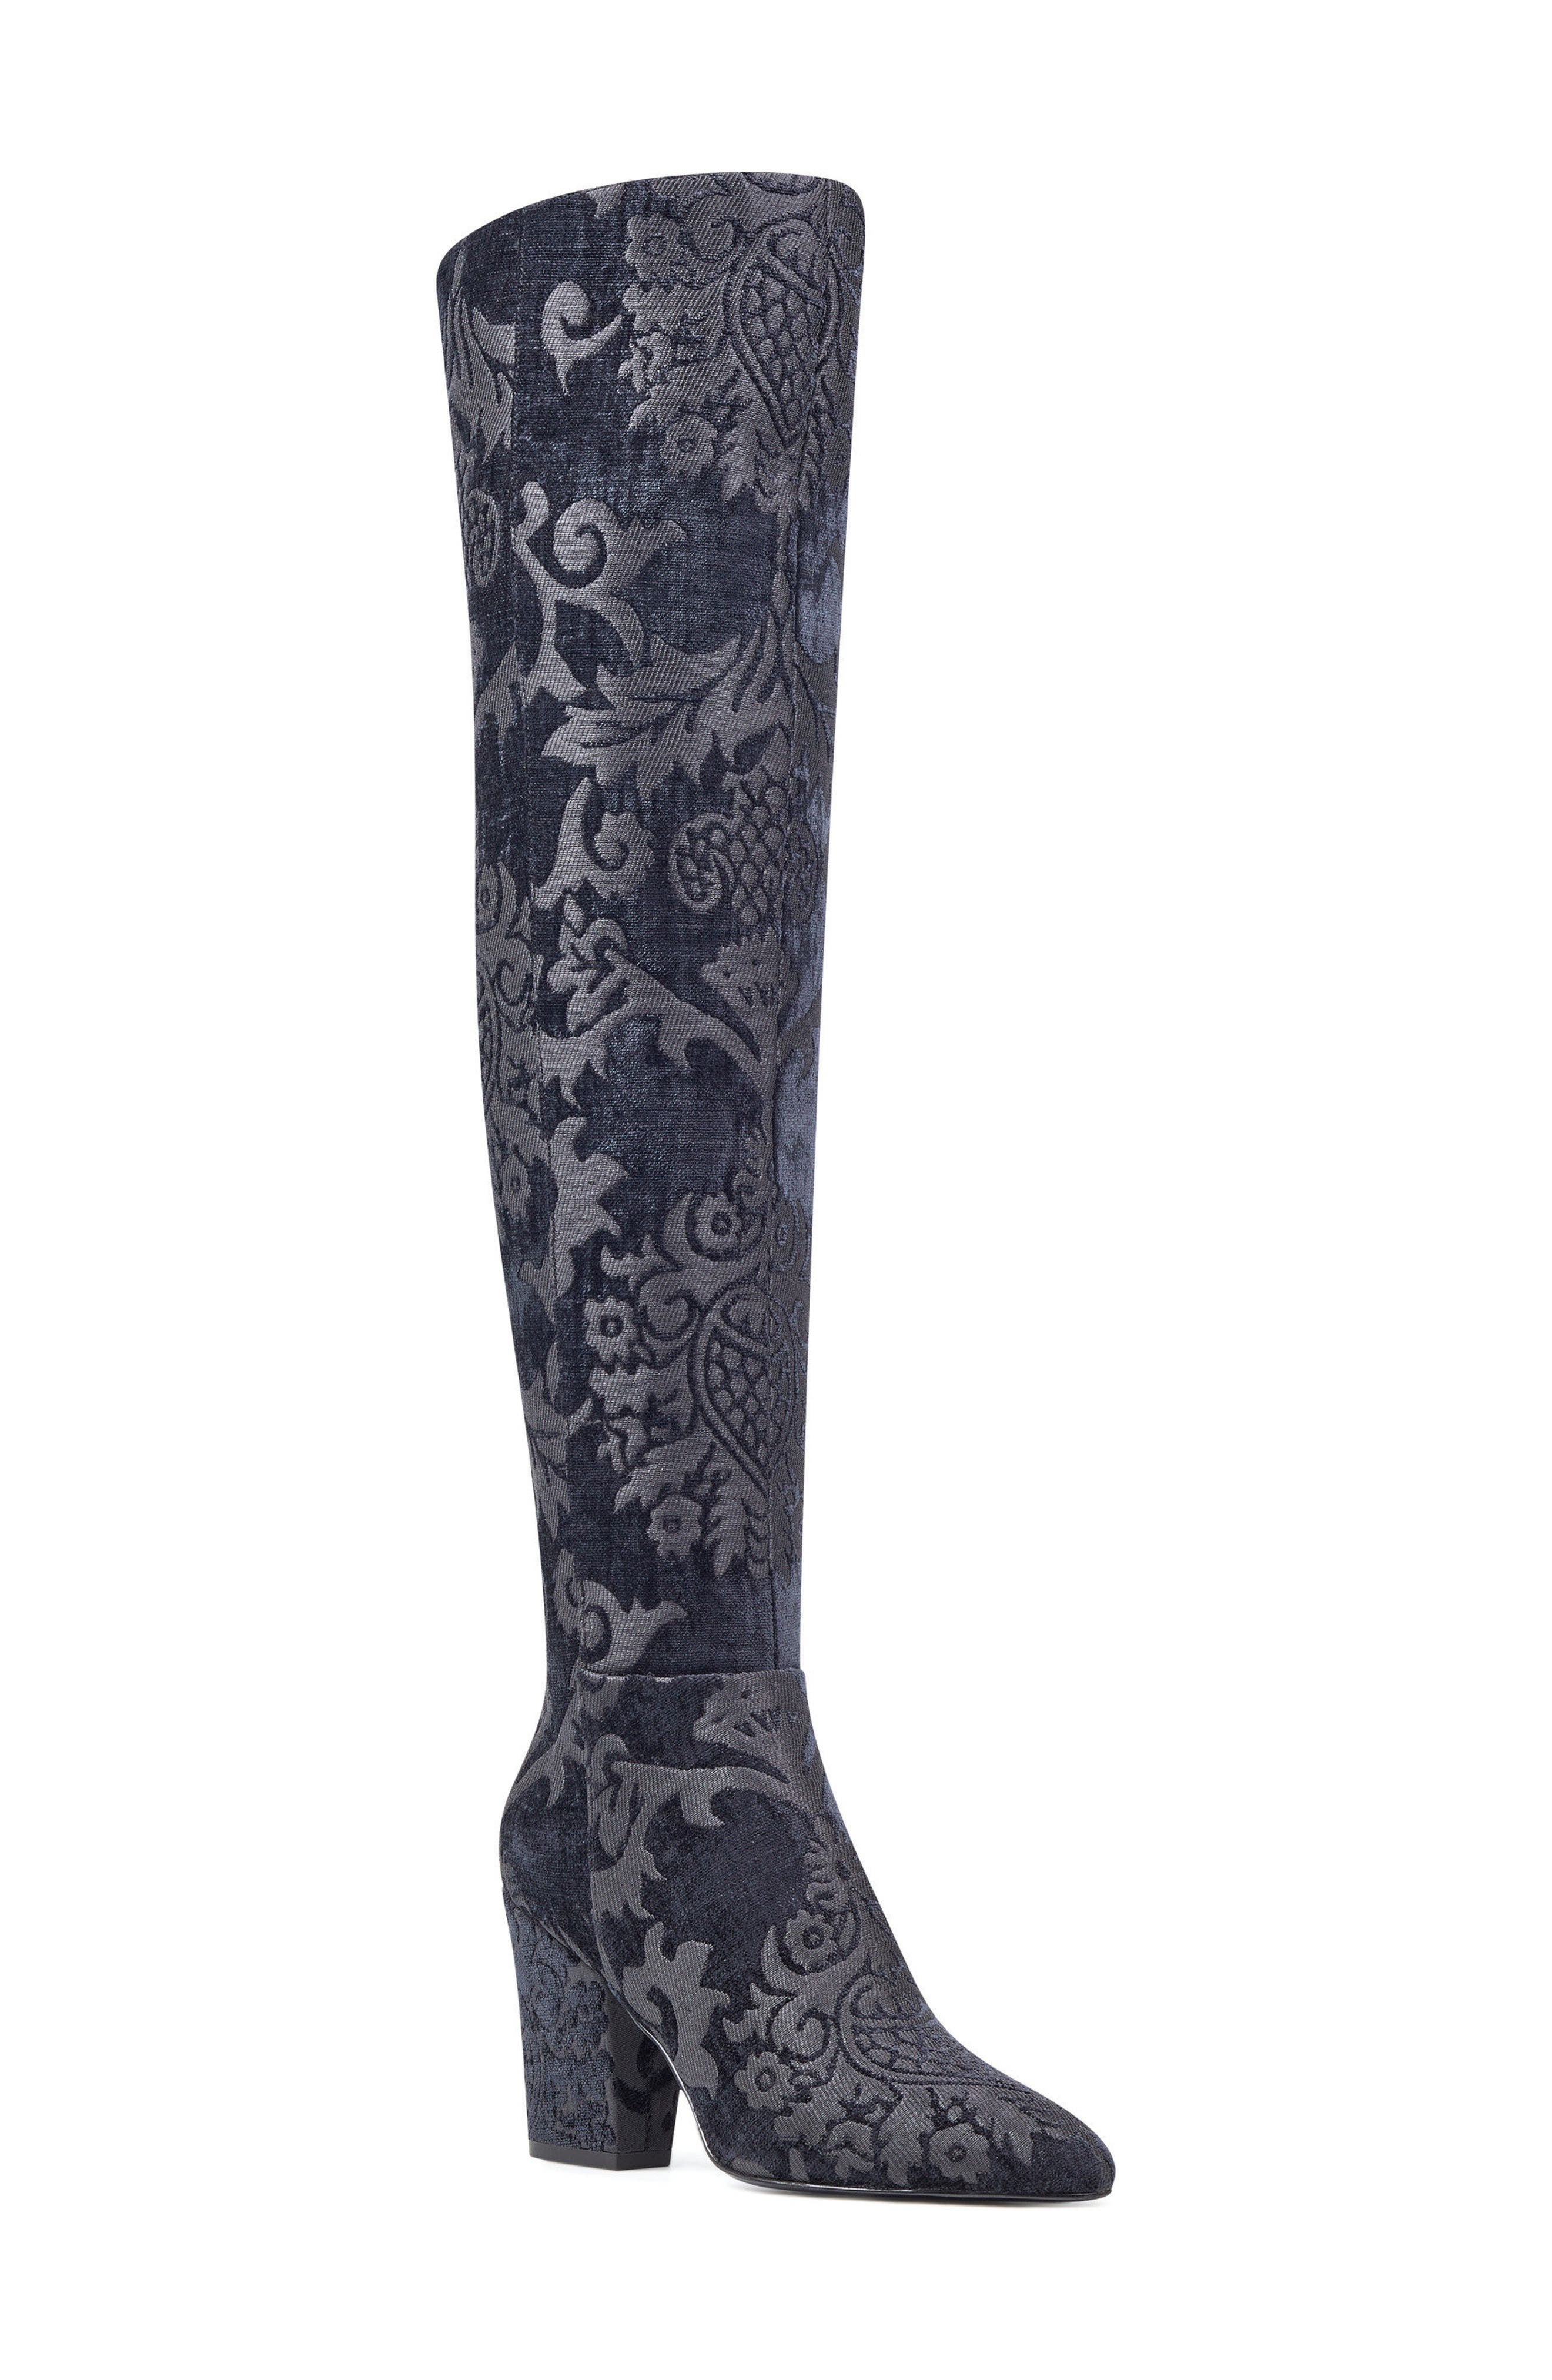 Siventa Over the Knee Boot,                         Main,                         color, 001